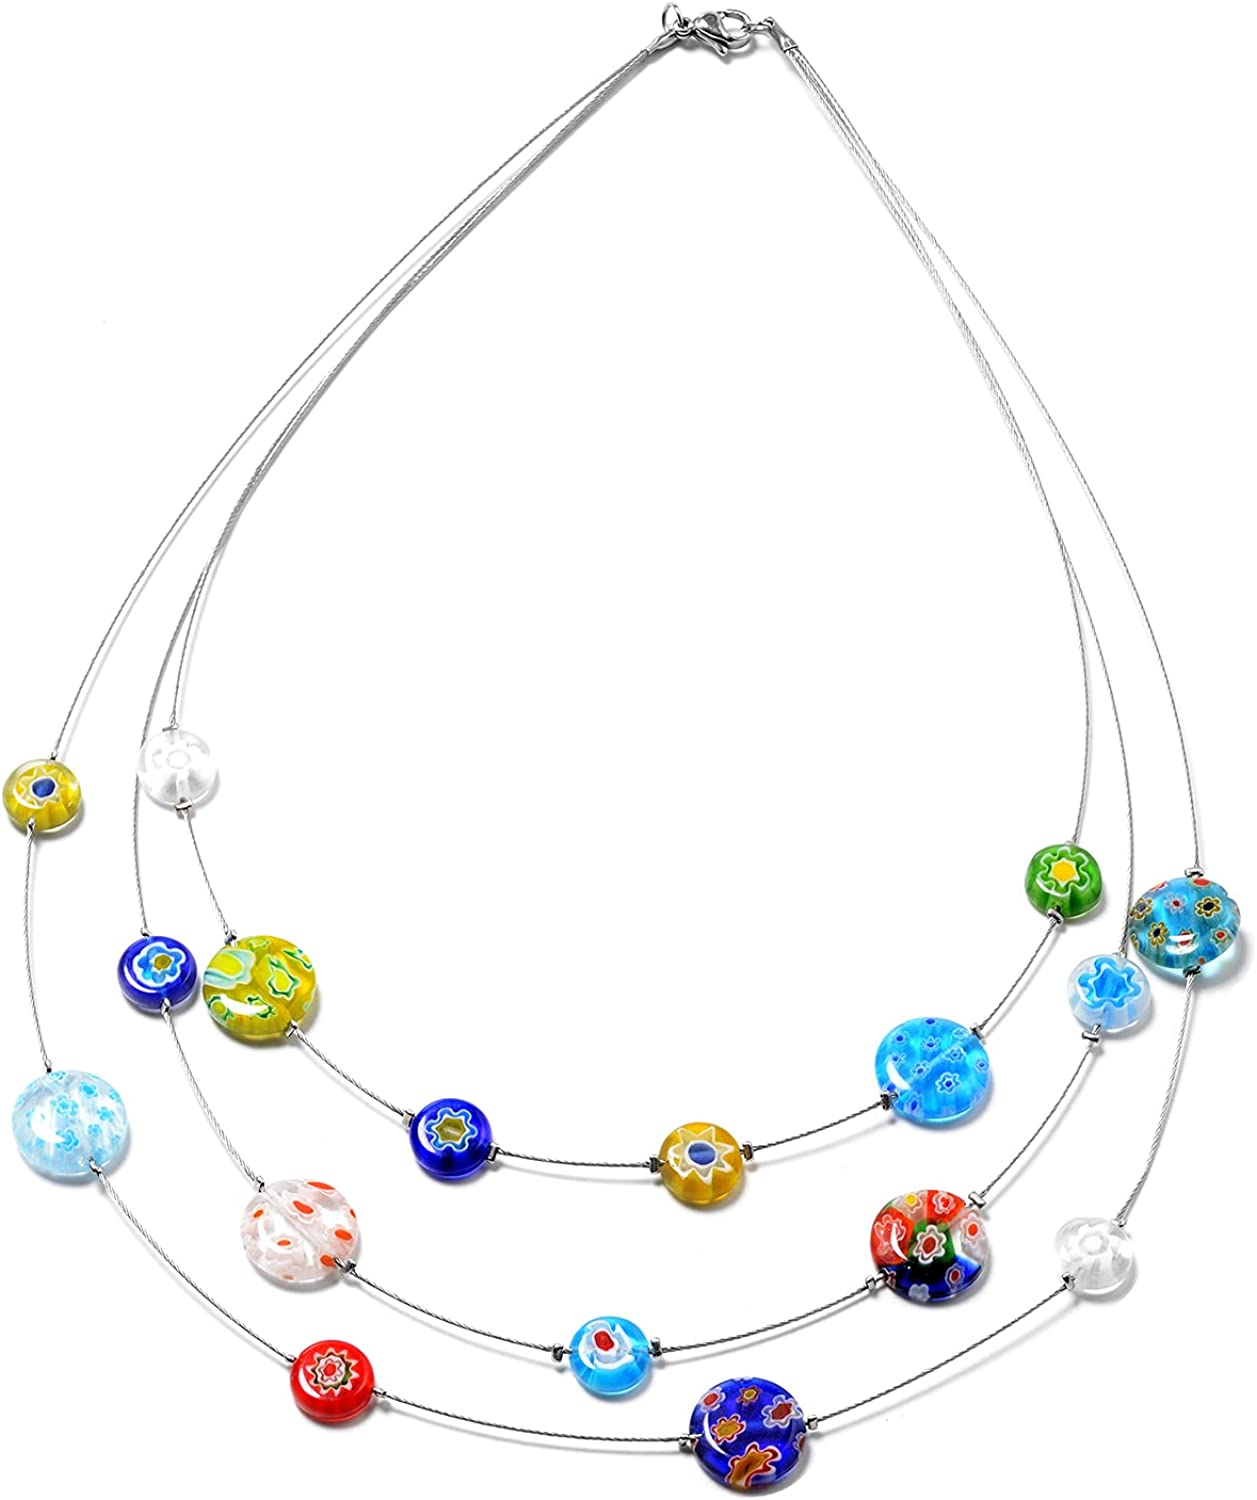 Shop LC Stainless Steel Murano Millefiori Glass Multicolor Bead Station Multi Strand Drape Layered Beaded Choker Necklace Delicate Jewelry for Women 18